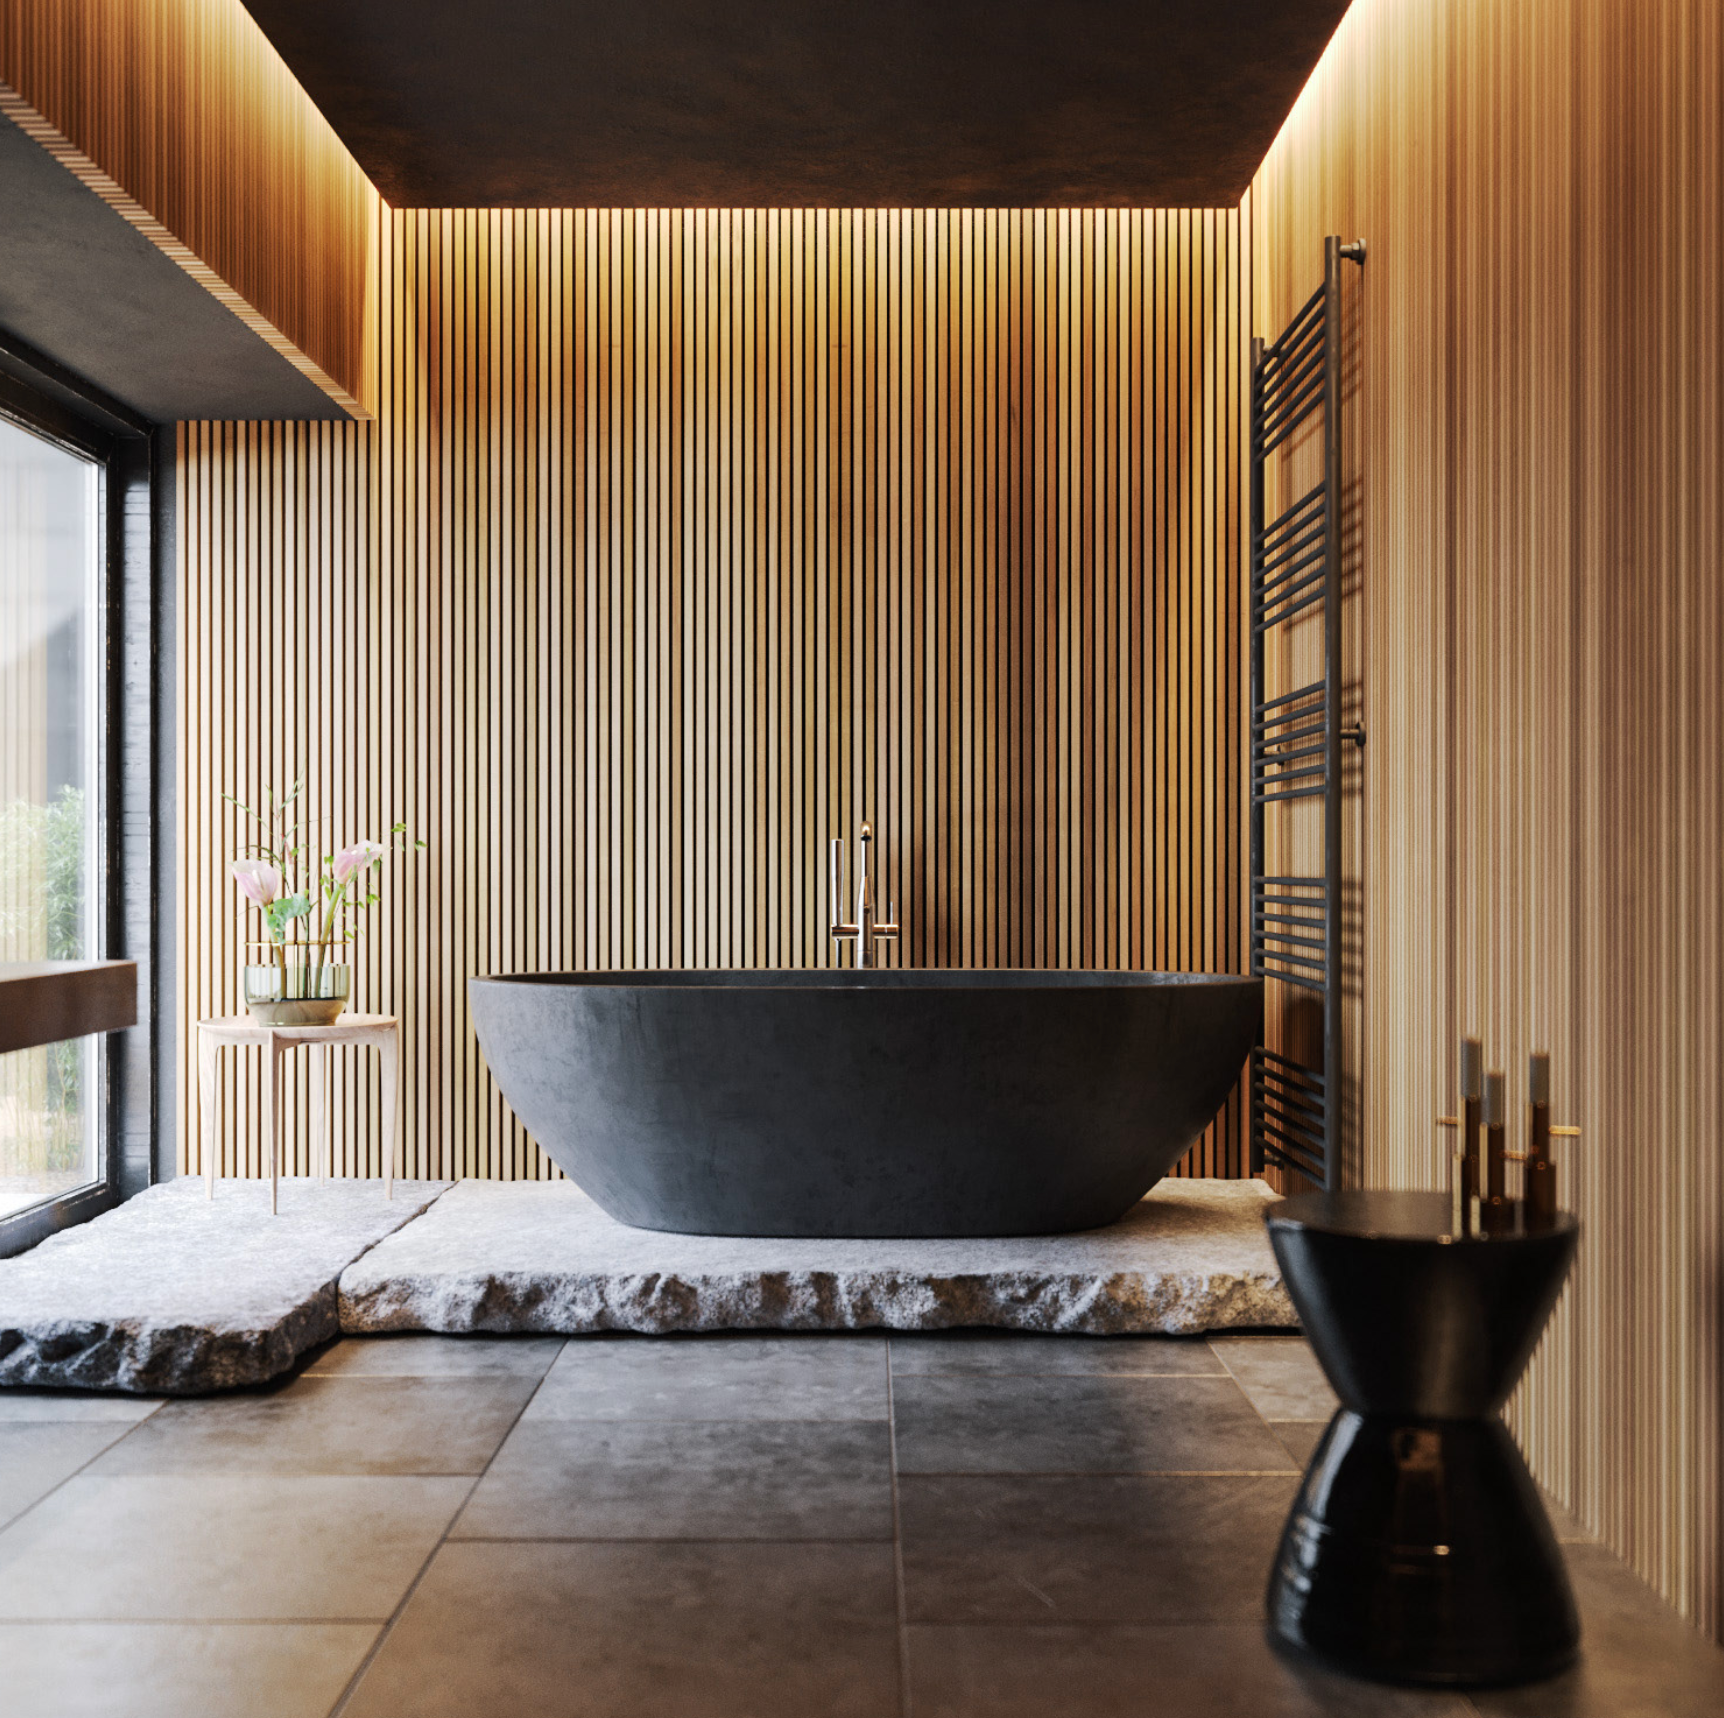 Is Wall Paneling Good For Home Improvement Modern Bathroom Design House Design Bathroom Design Luxury